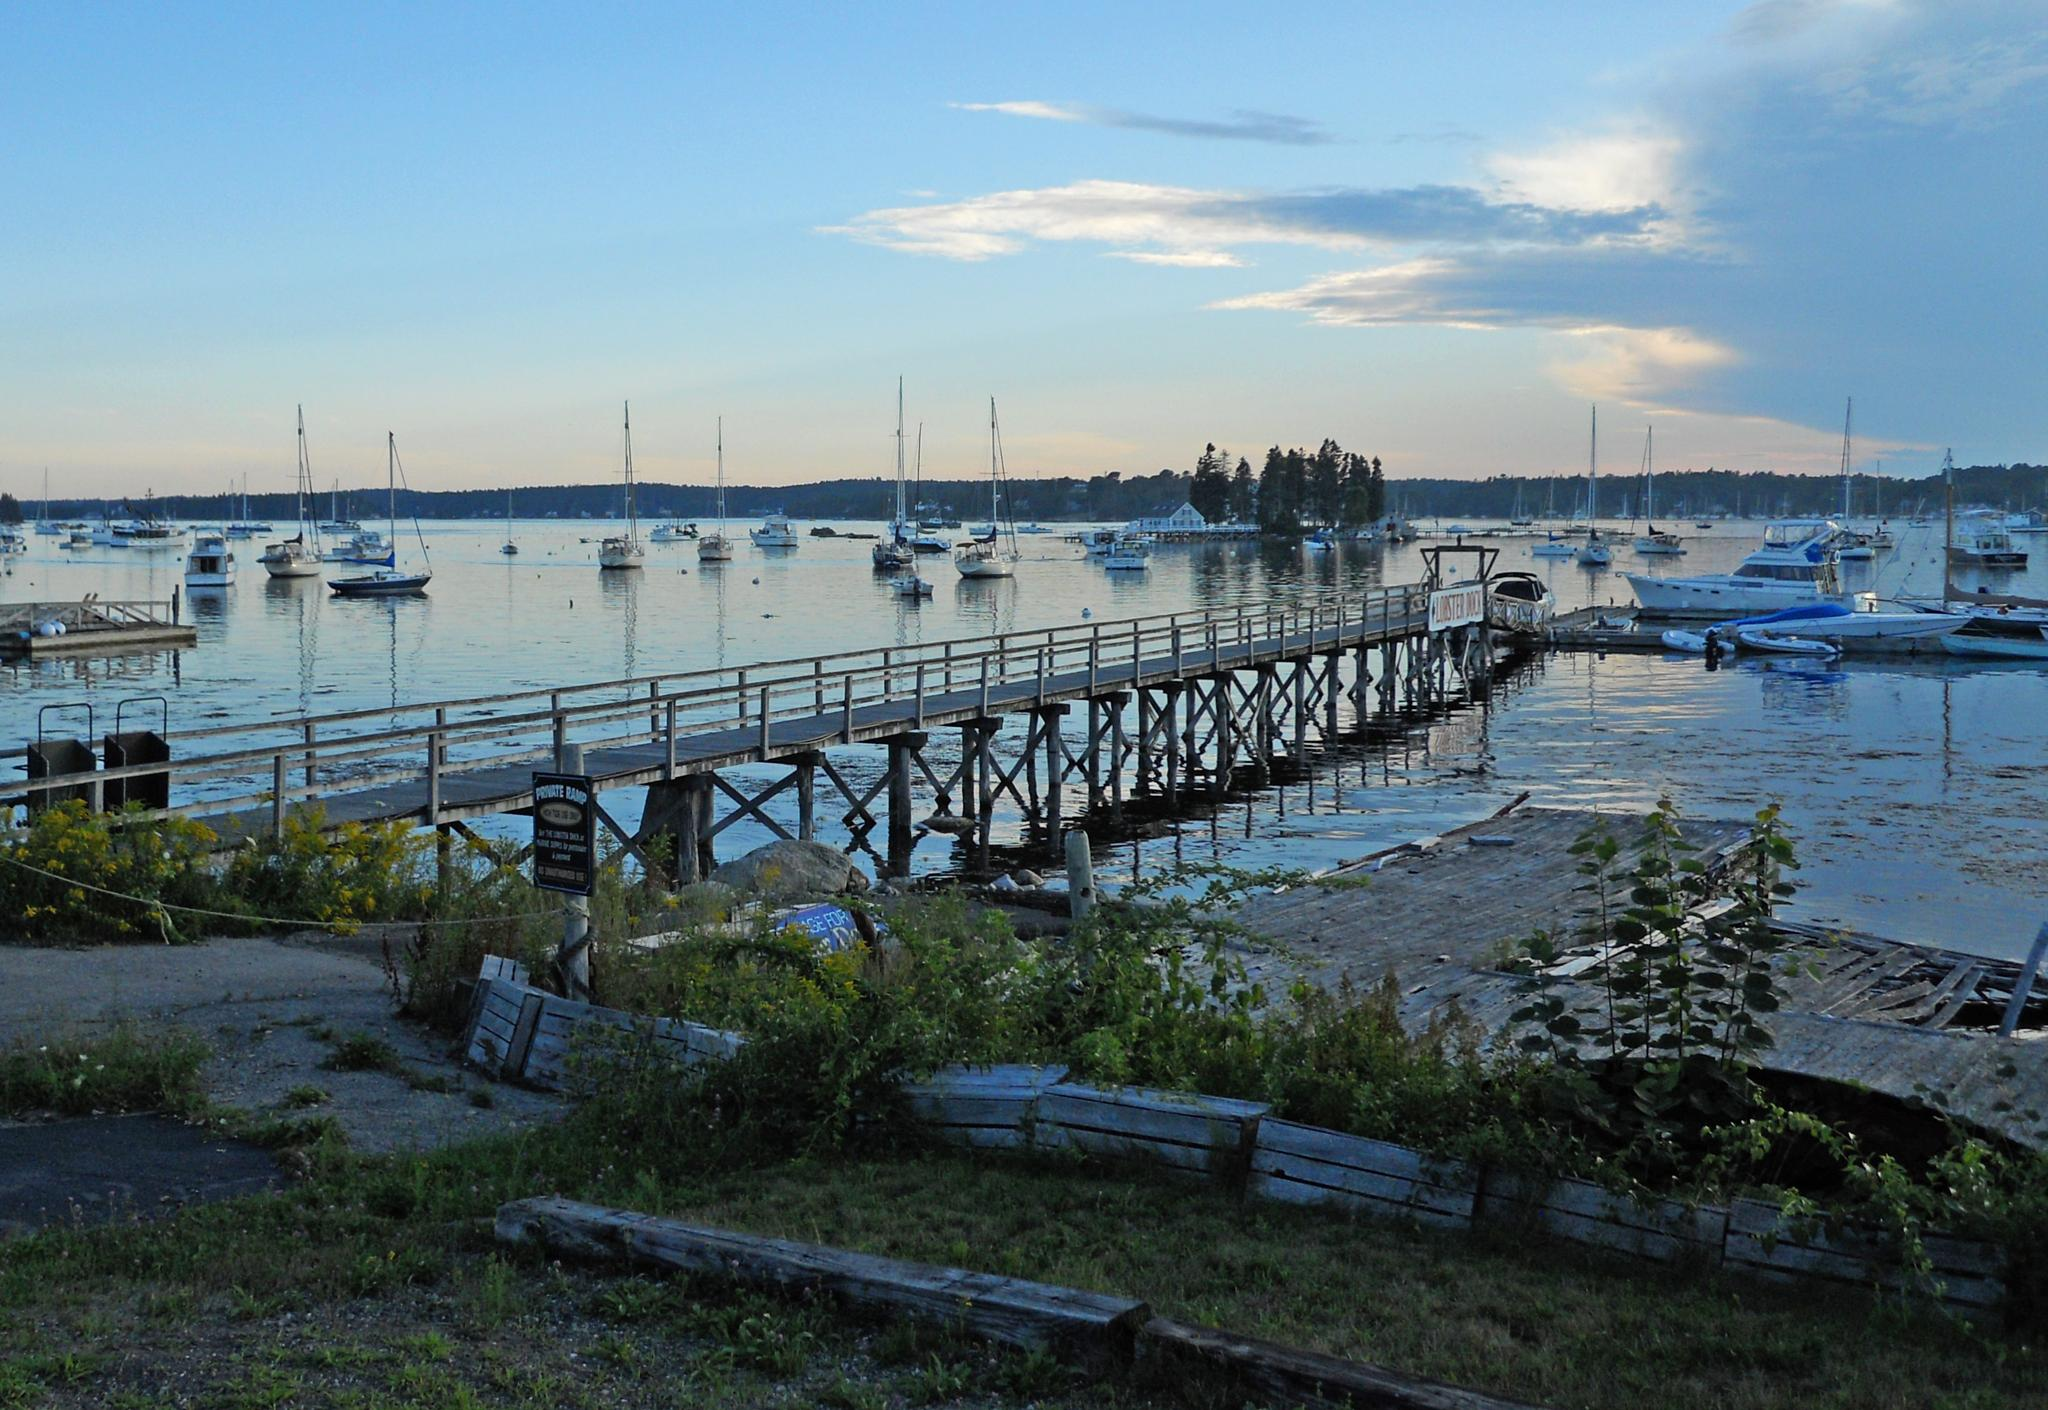 Evening at Boothbay Harbor by WCGPhoto1